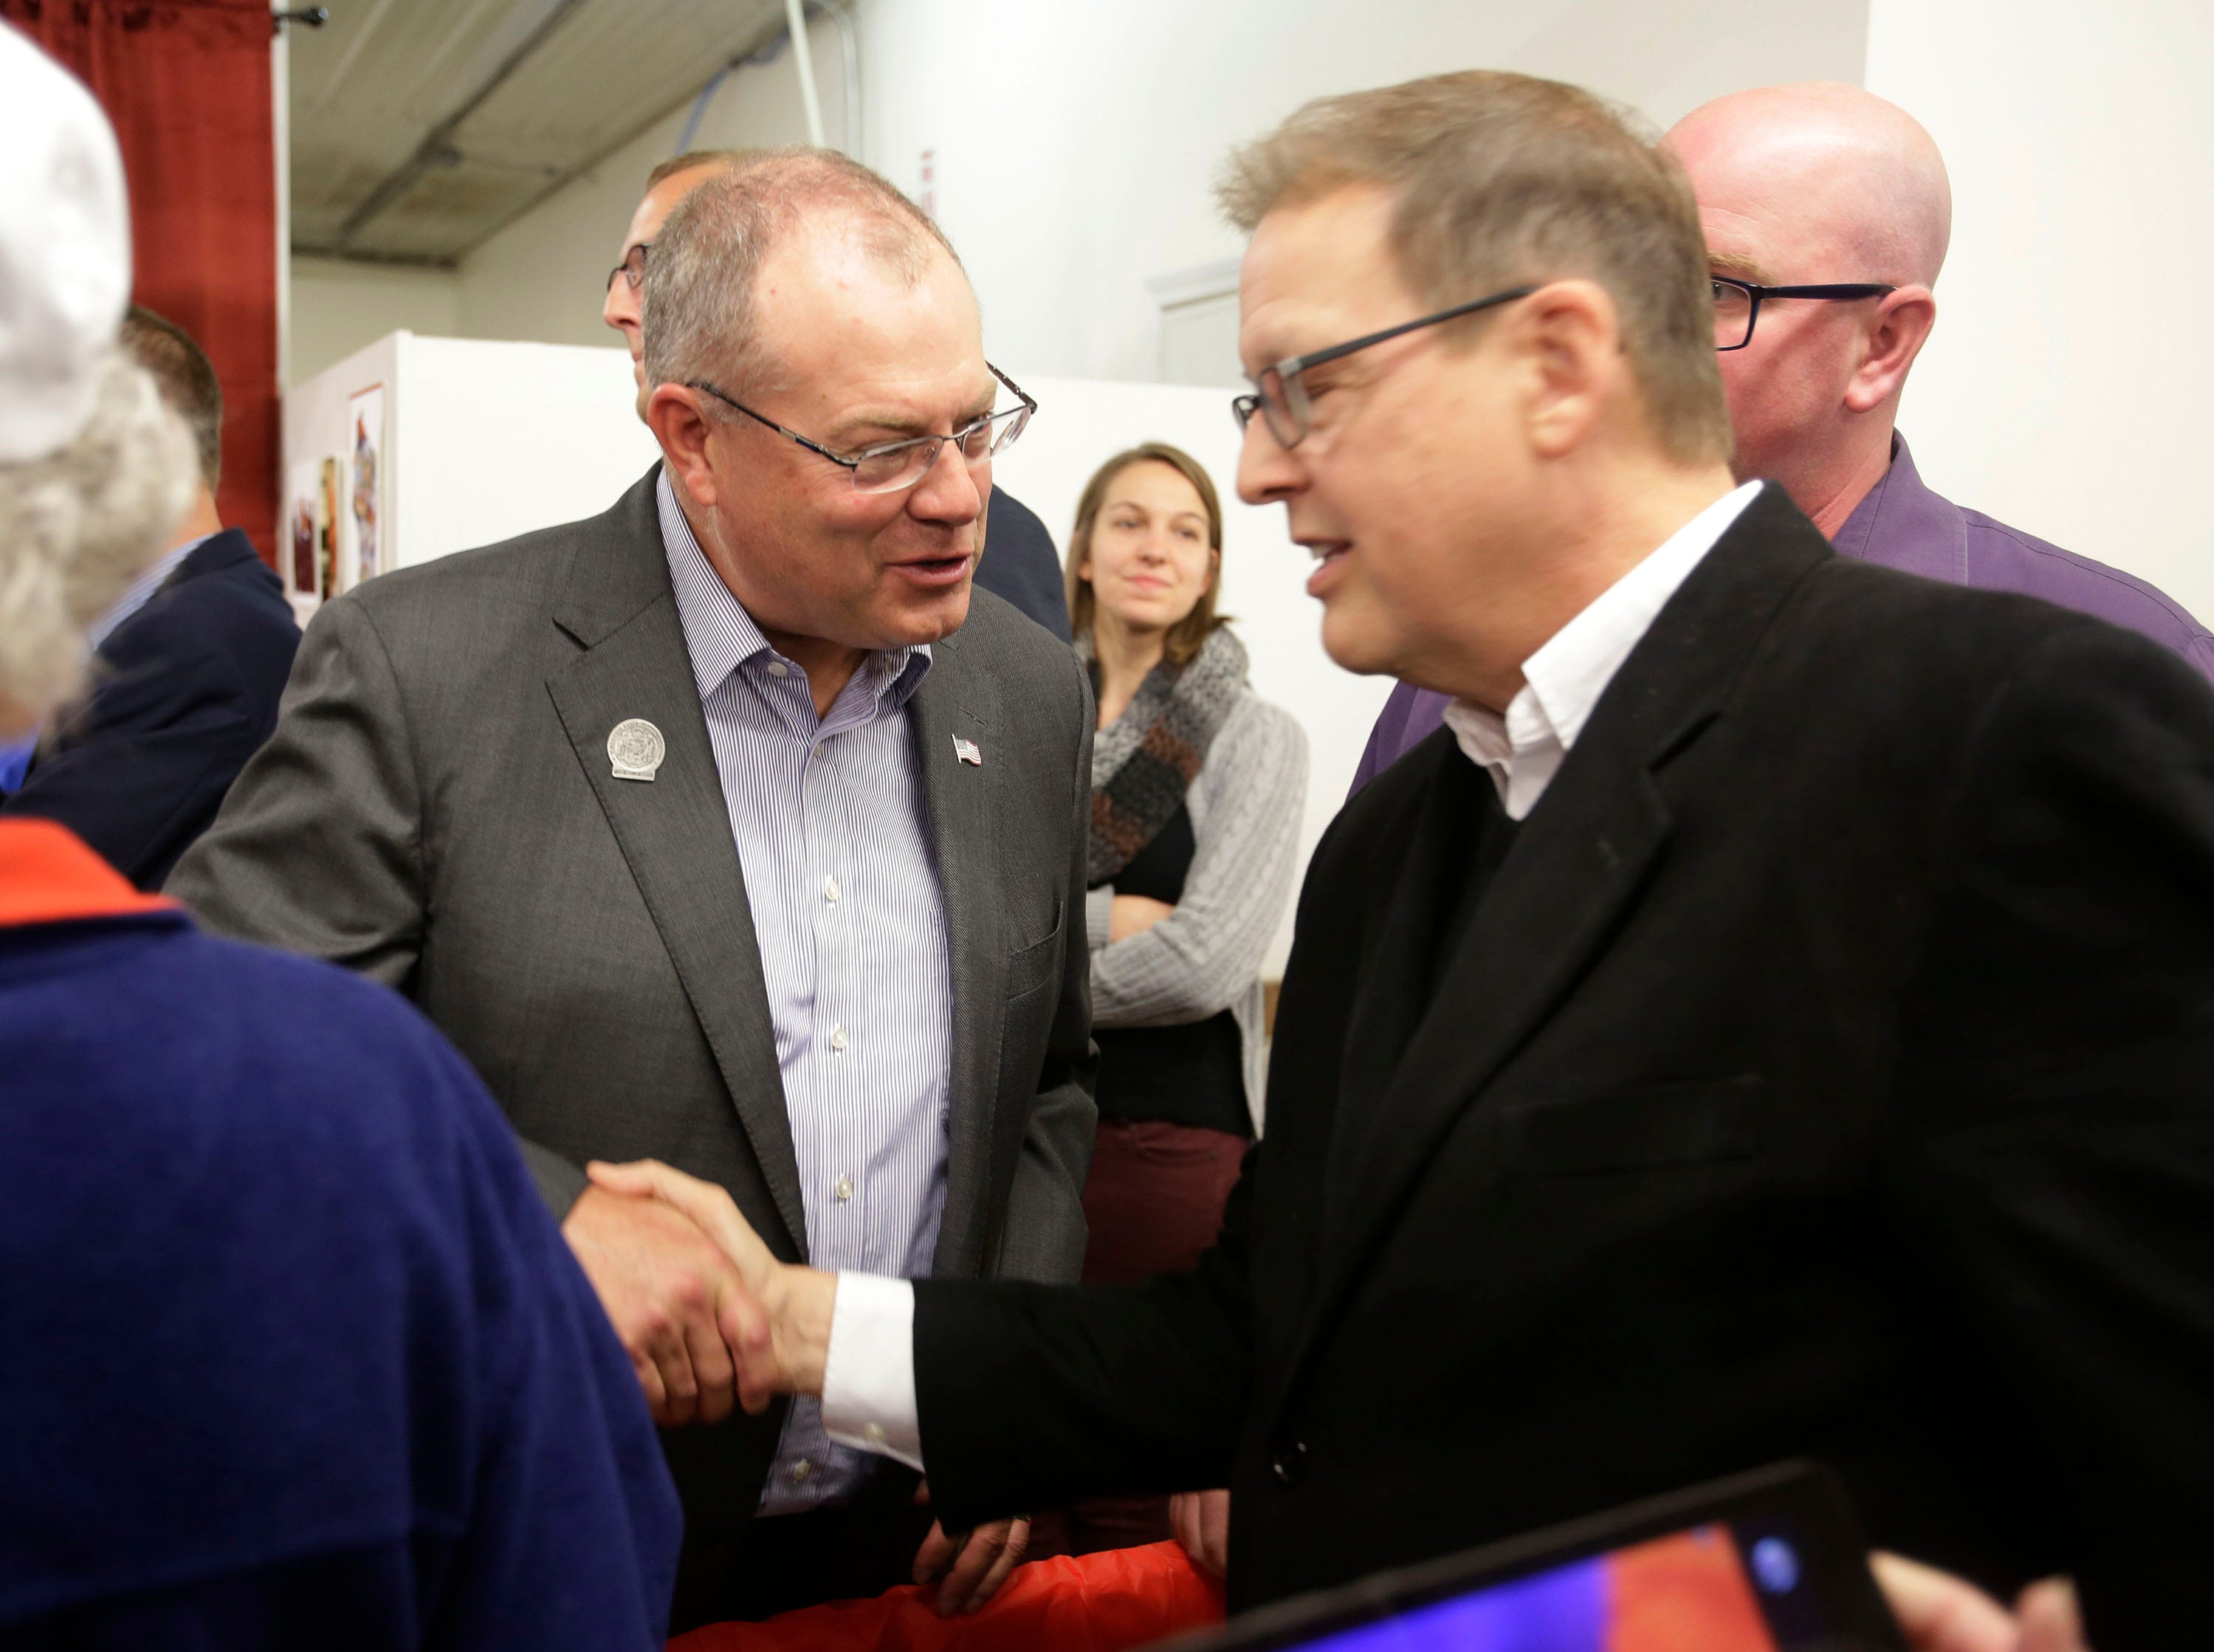 State Representative Terry Katsma, left, speaks to a supporter at a campaign rally at the GOP headquarters, Tuesday, October 30, 2018, in Sheboygan, Wis.